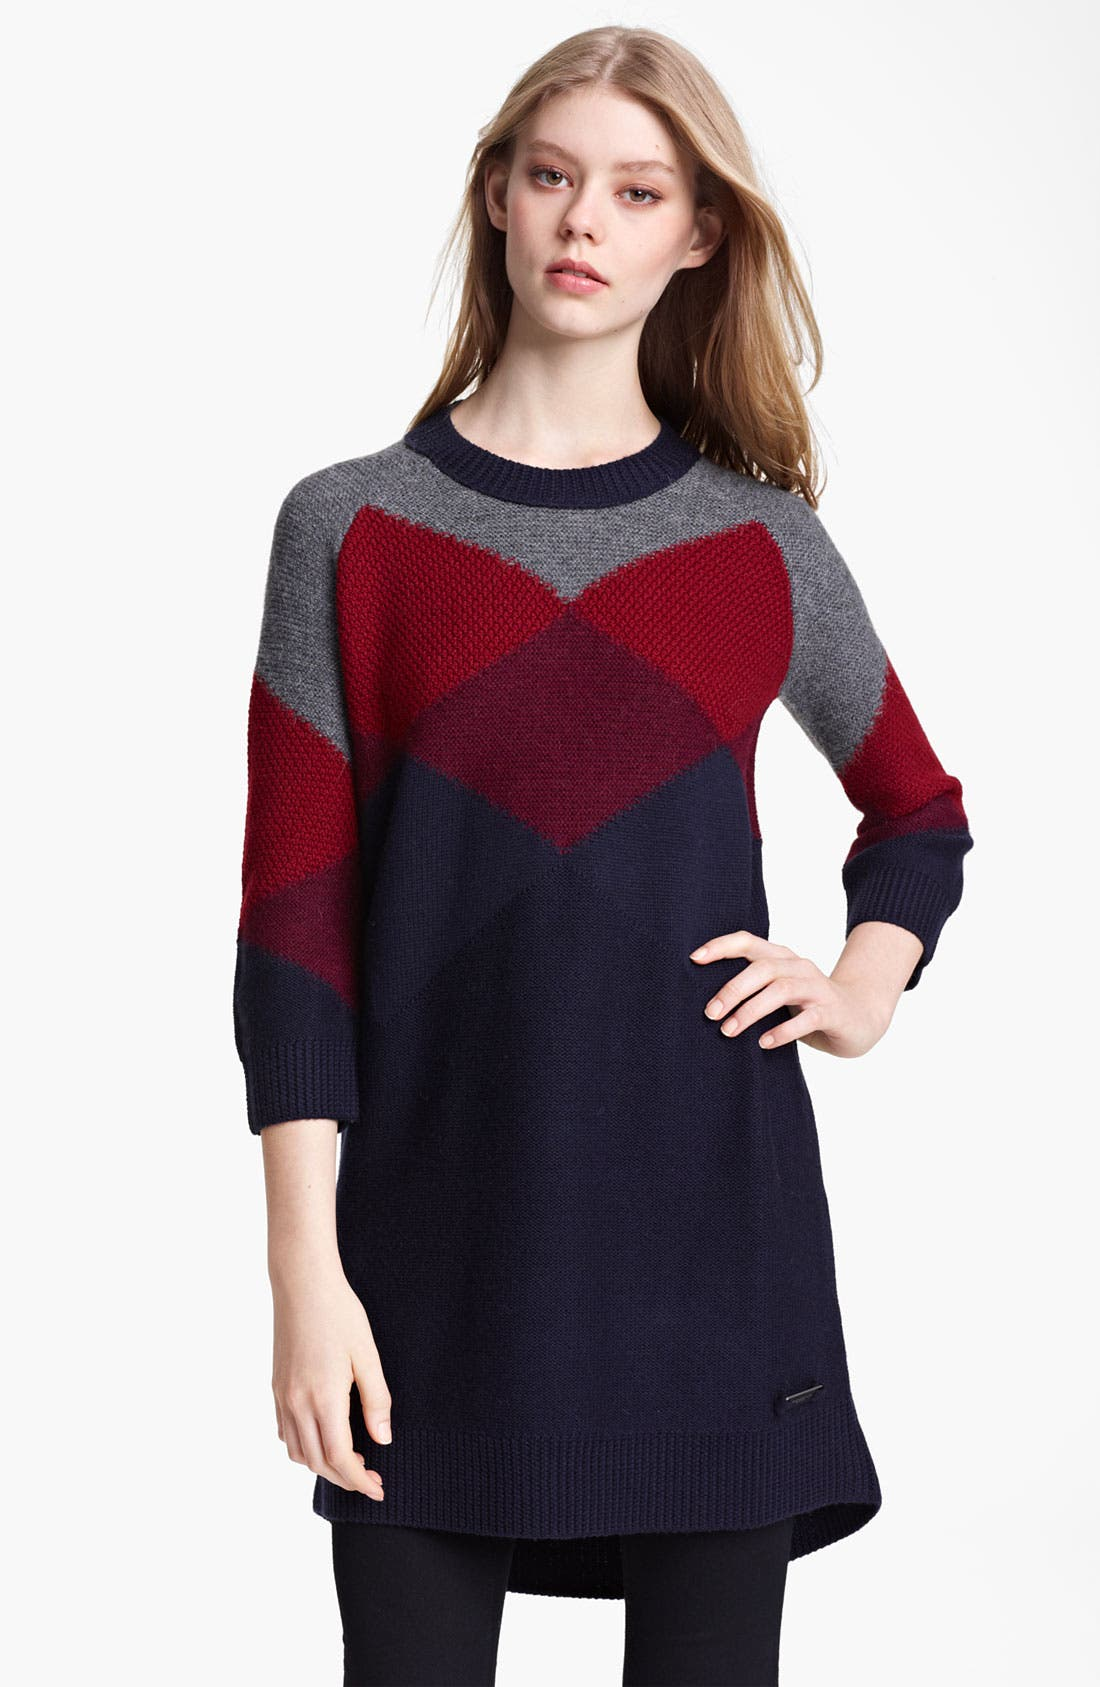 Main Image - Burberry Brit Knit Sweater Dress (Online Exclusive)